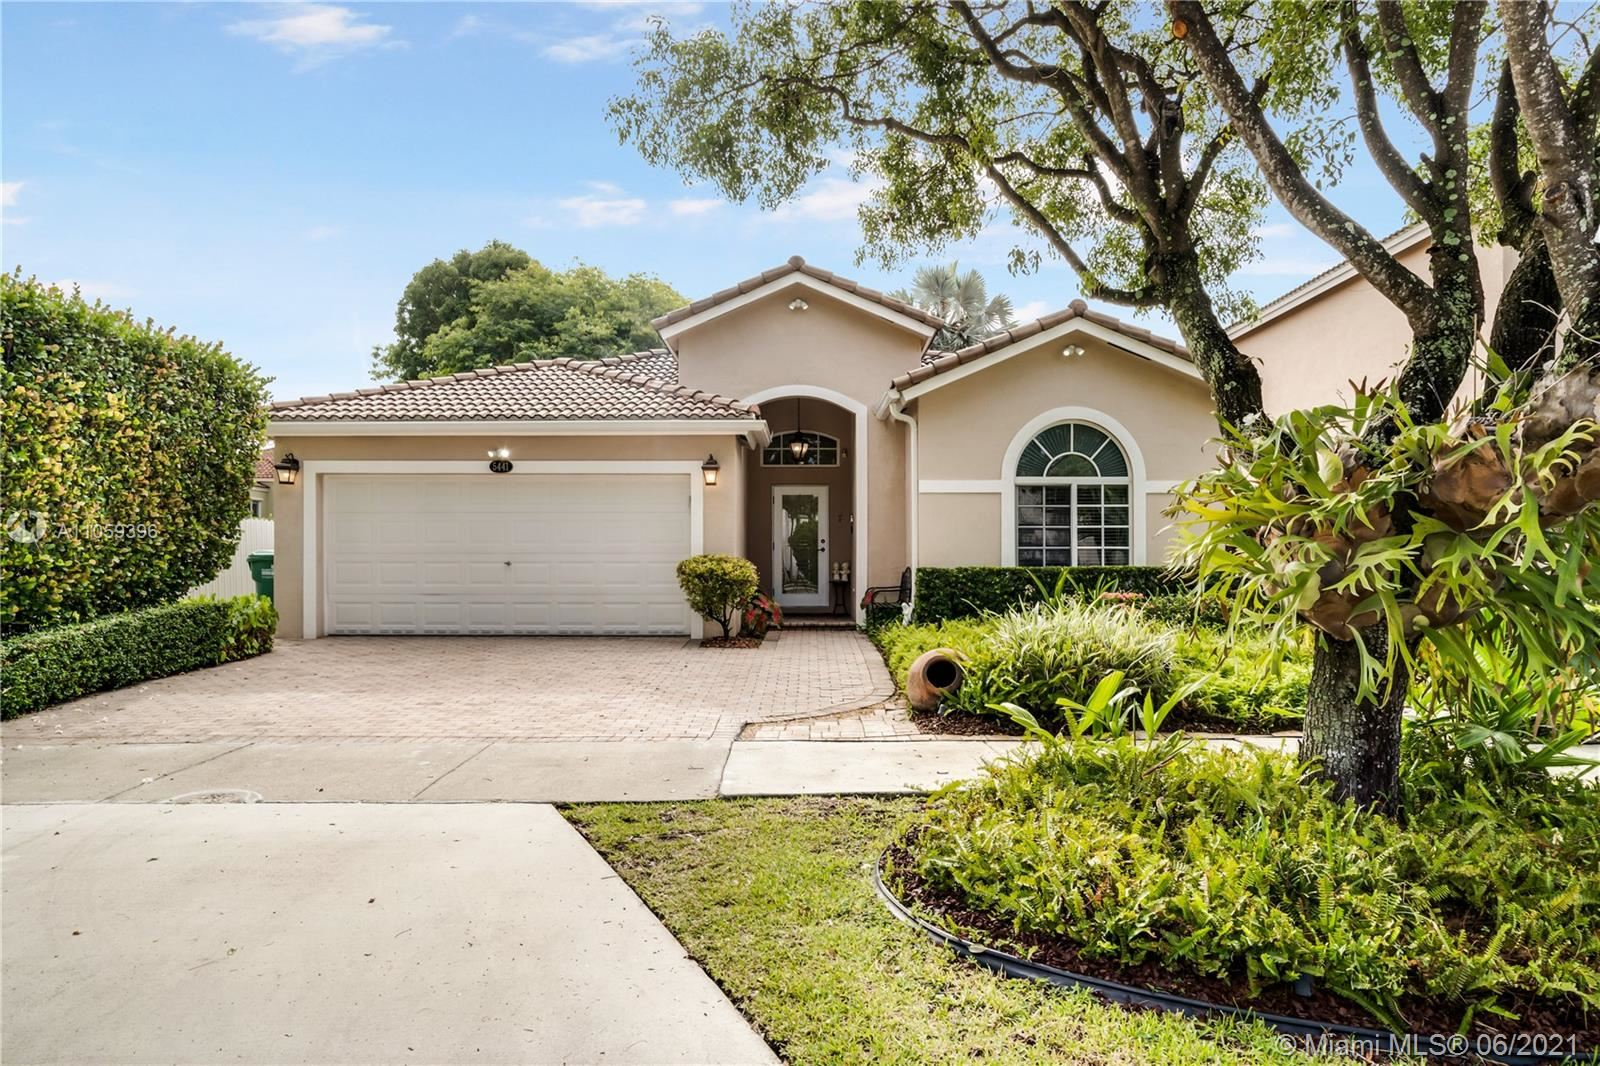 5441 NW 110th Ave, Doral, FL 33178 - #: A11059396